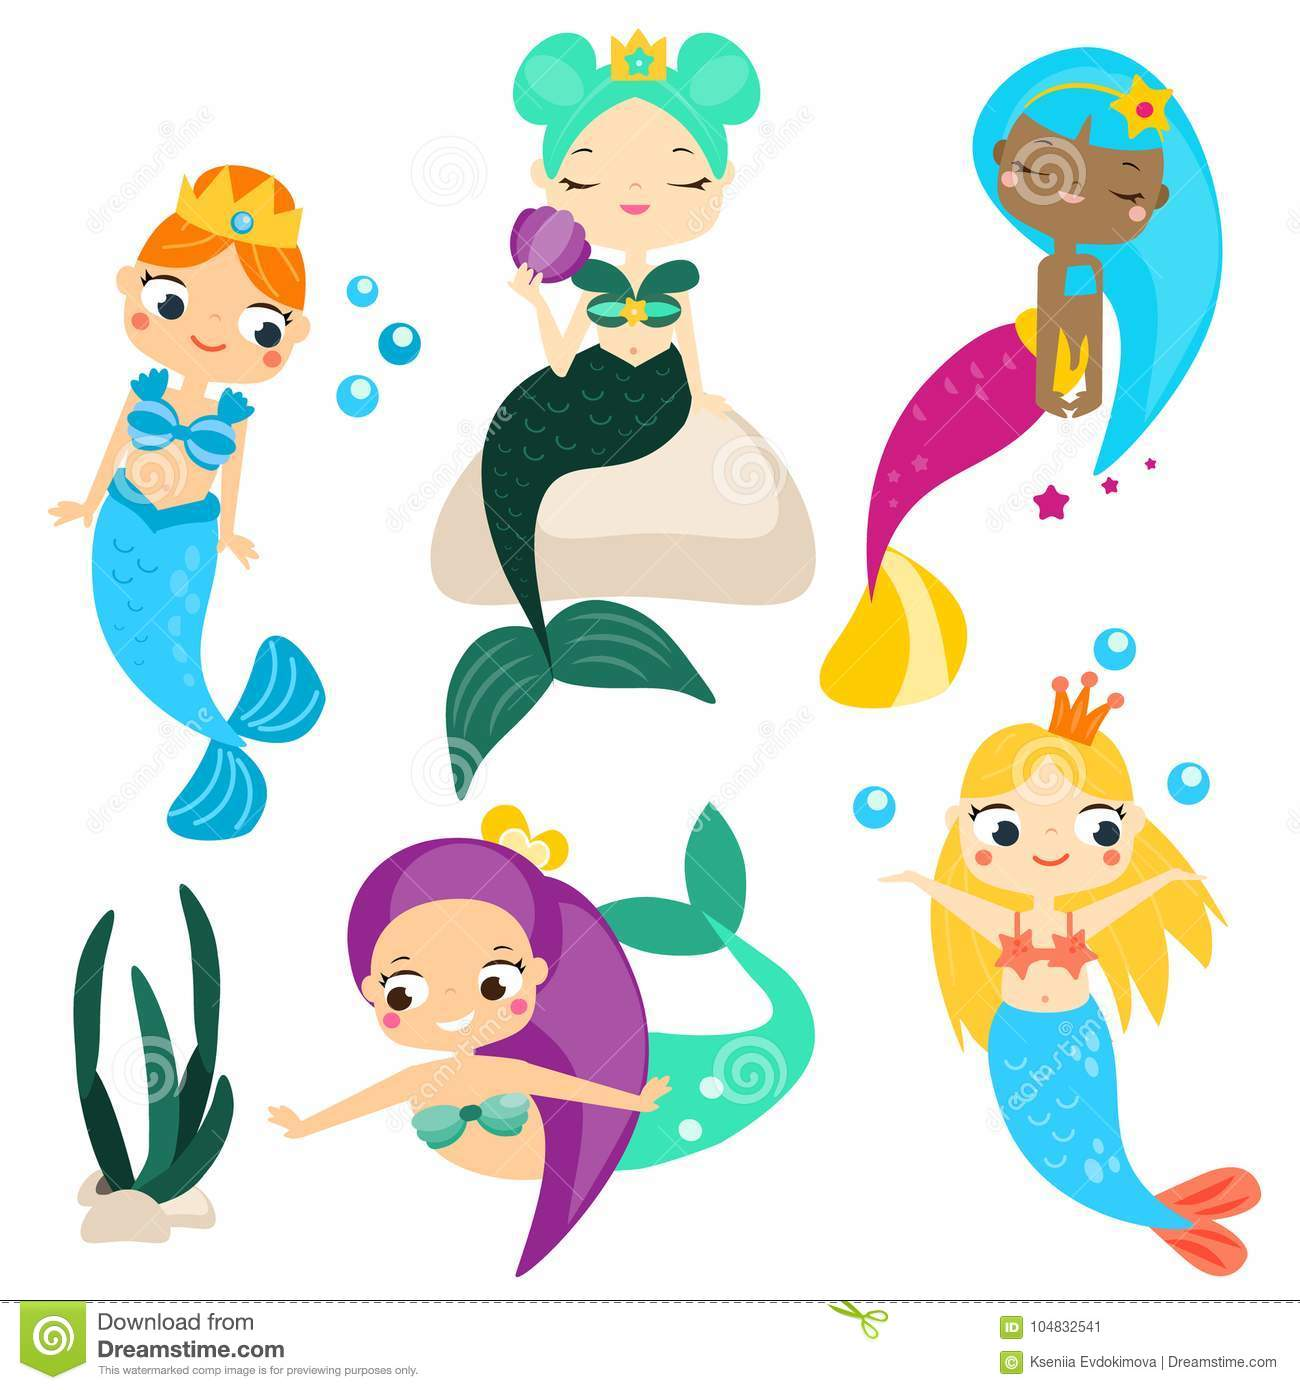 Mermaids Cartoons, Illustrations & Vector Stock Images ...